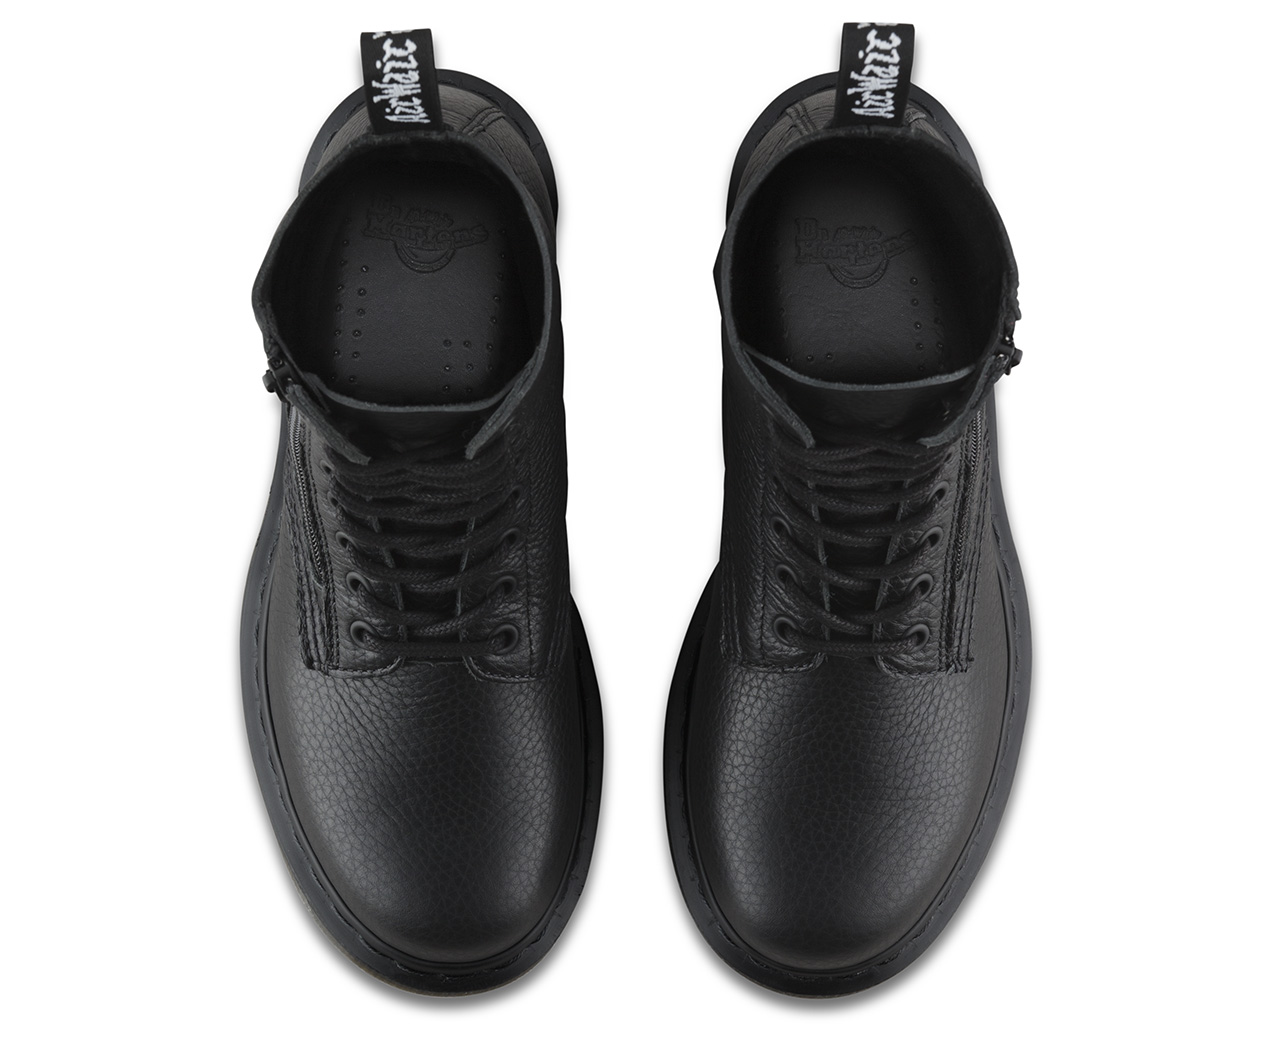 Aw18 Official Wzip Store The 1460 Martens Fr Pascal Dr FqZRwAE